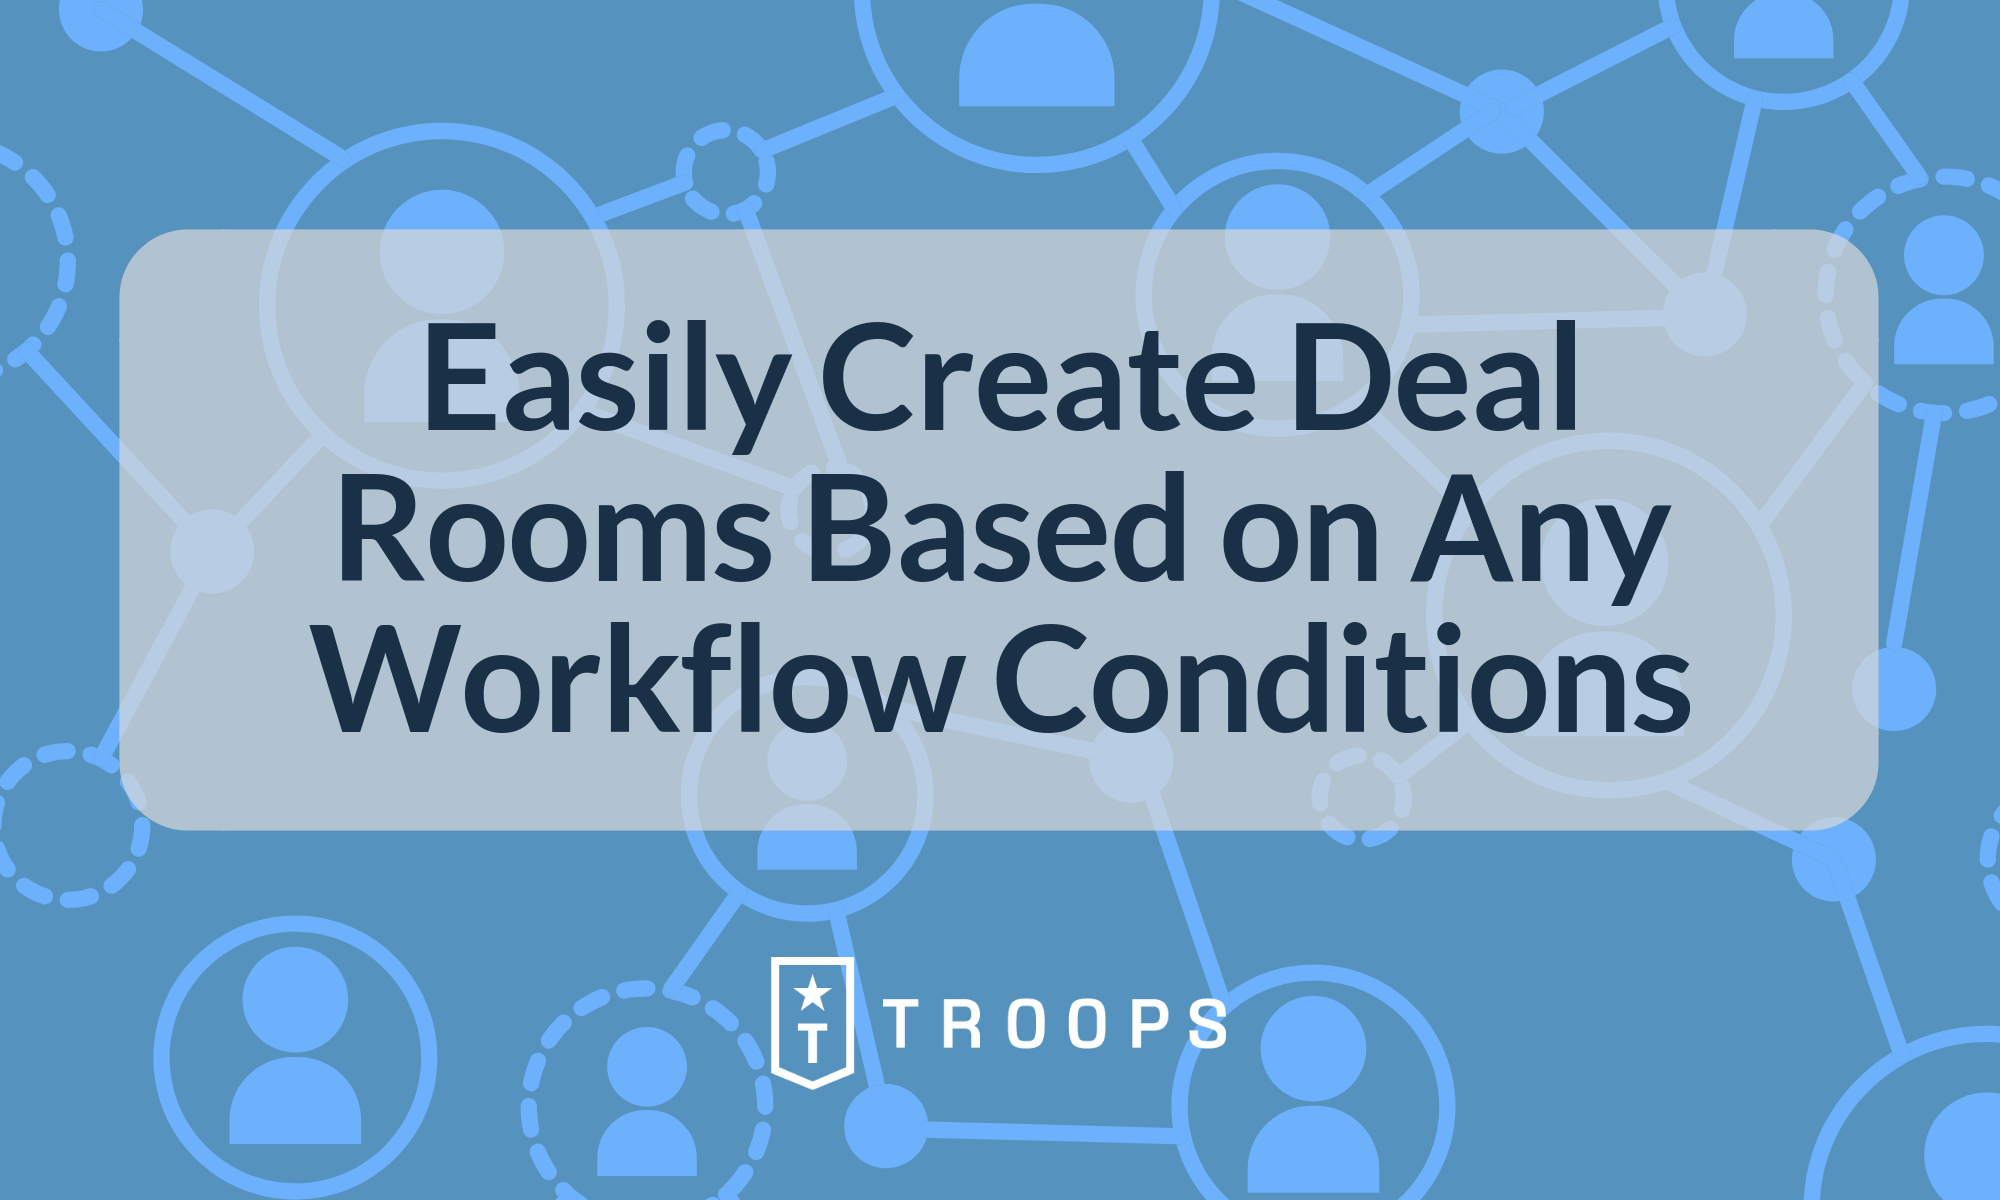 Easily Create Deal Rooms Based on Any Workflow Conditions